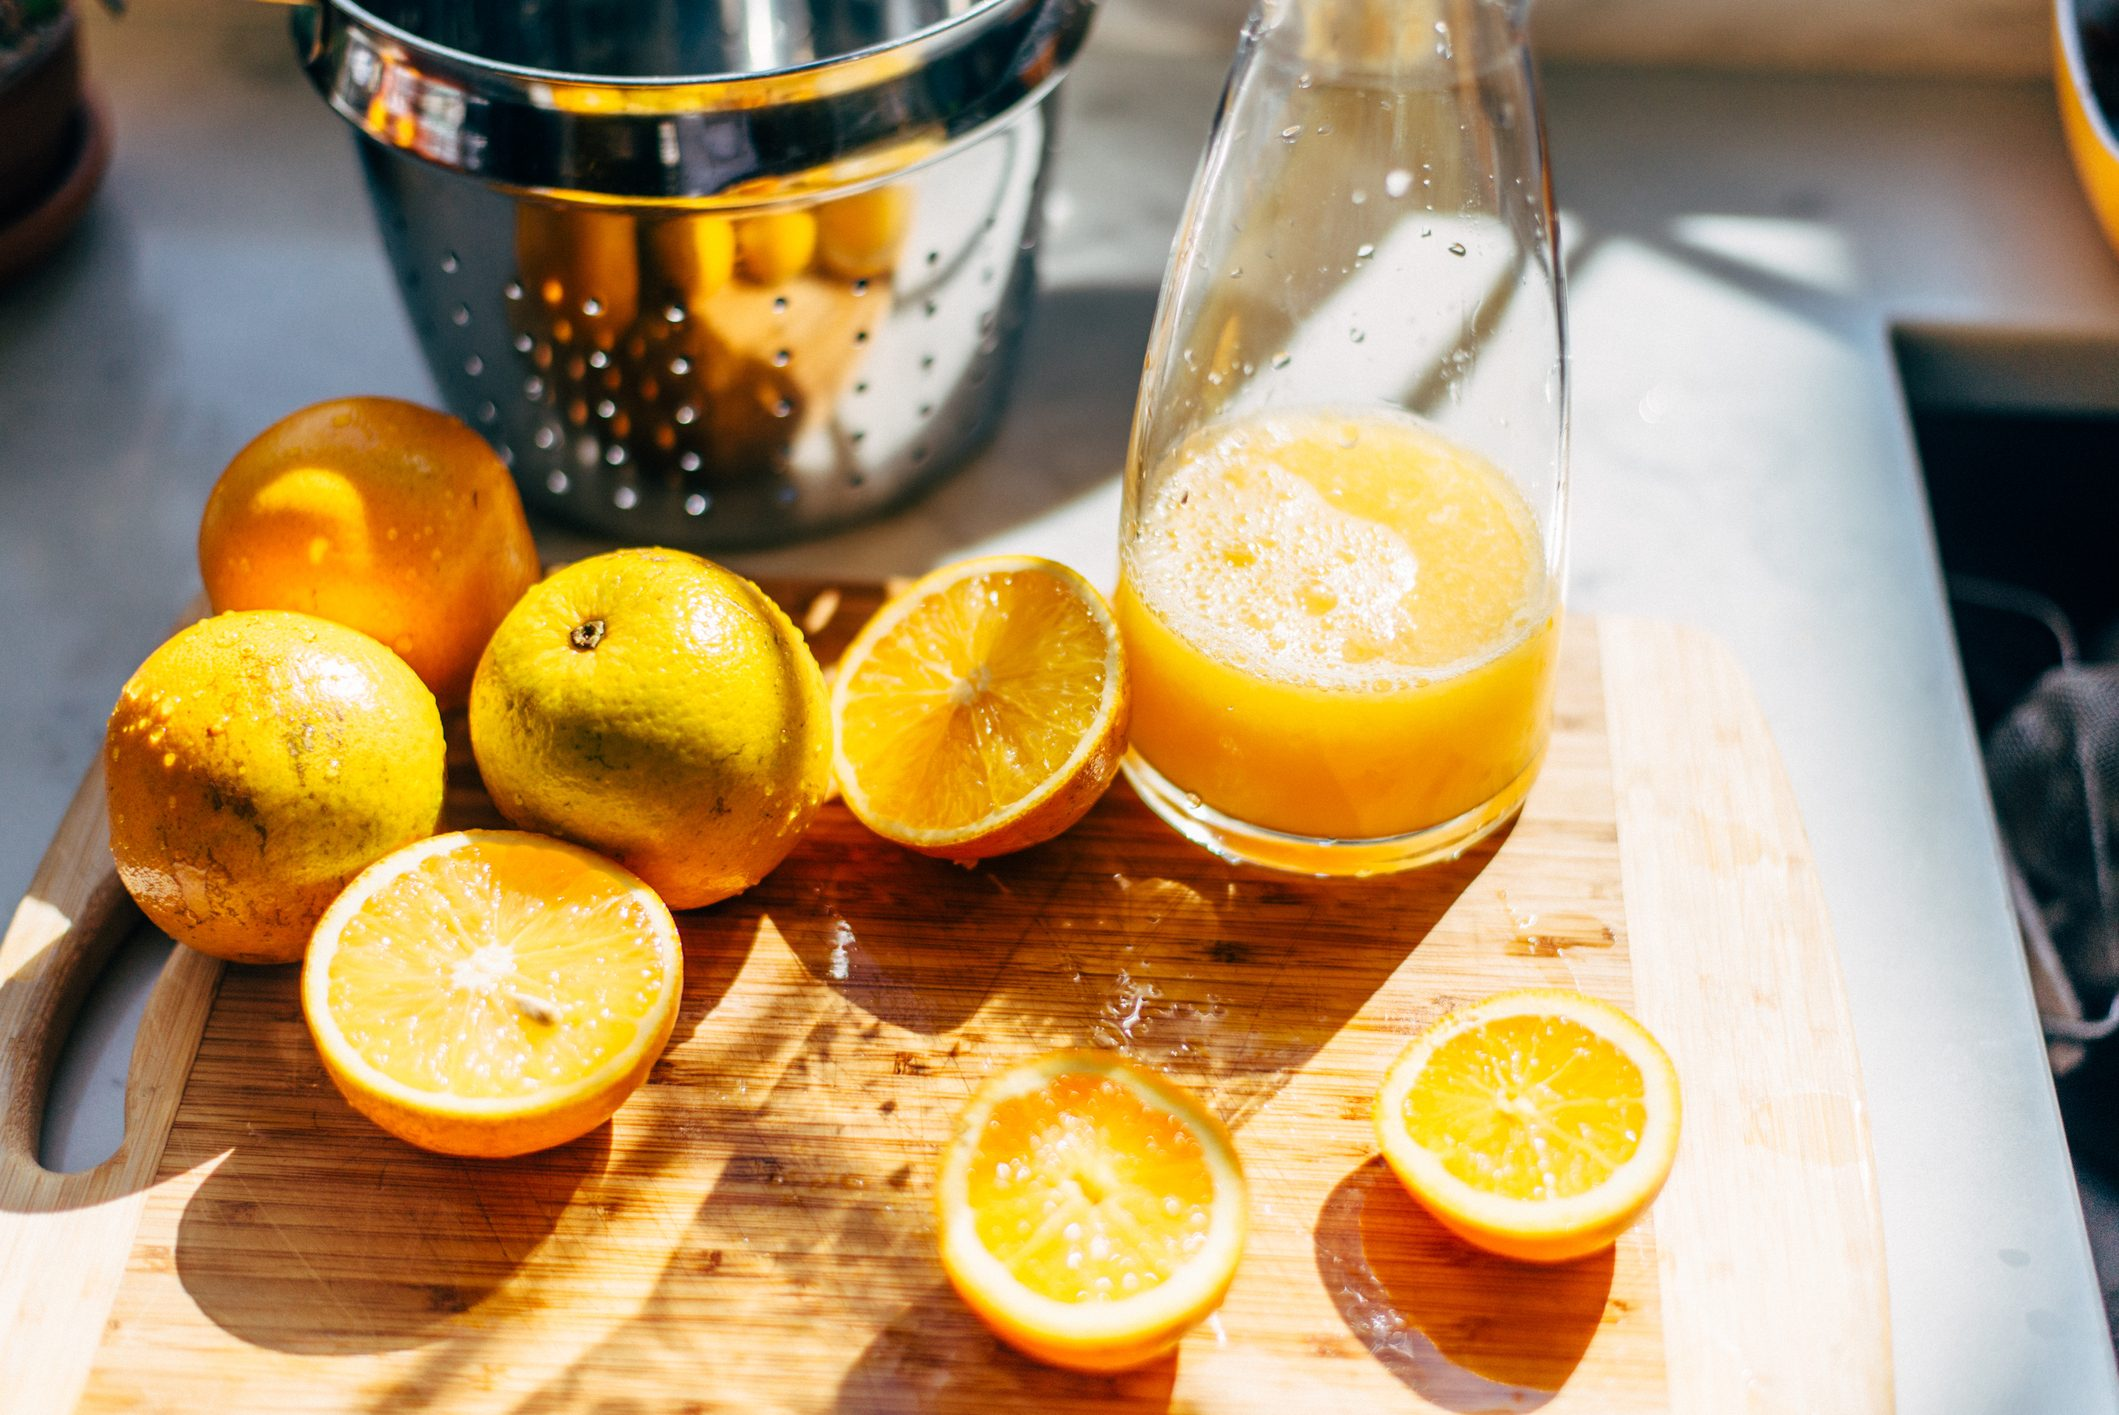 oranges for fresh squeezed orange juice